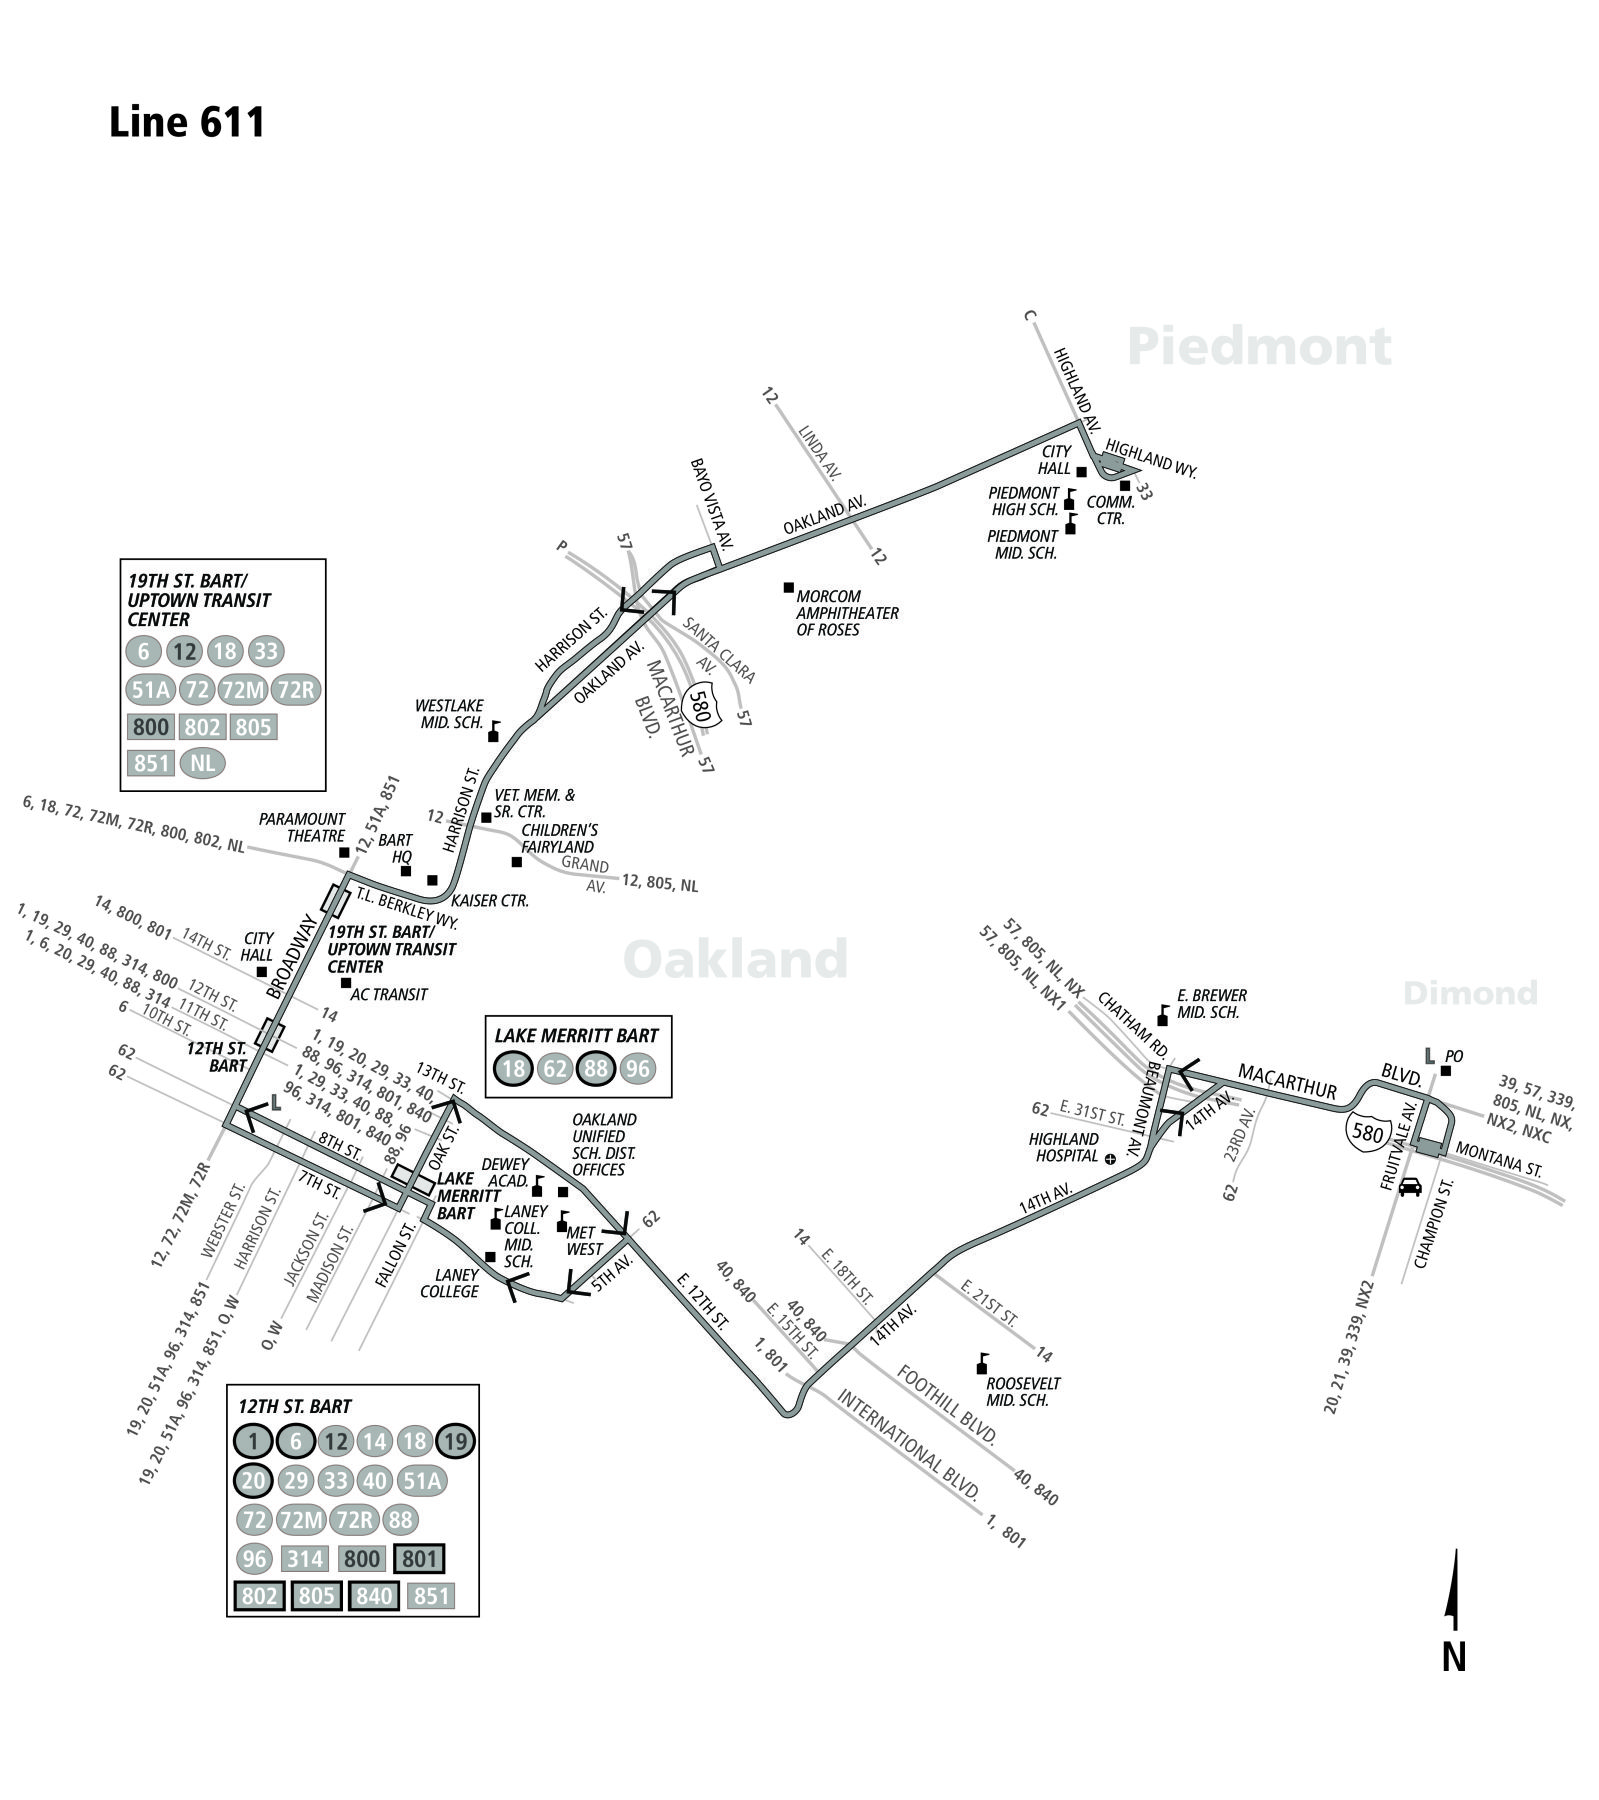 611 bus route - ac transit - sf bay transit